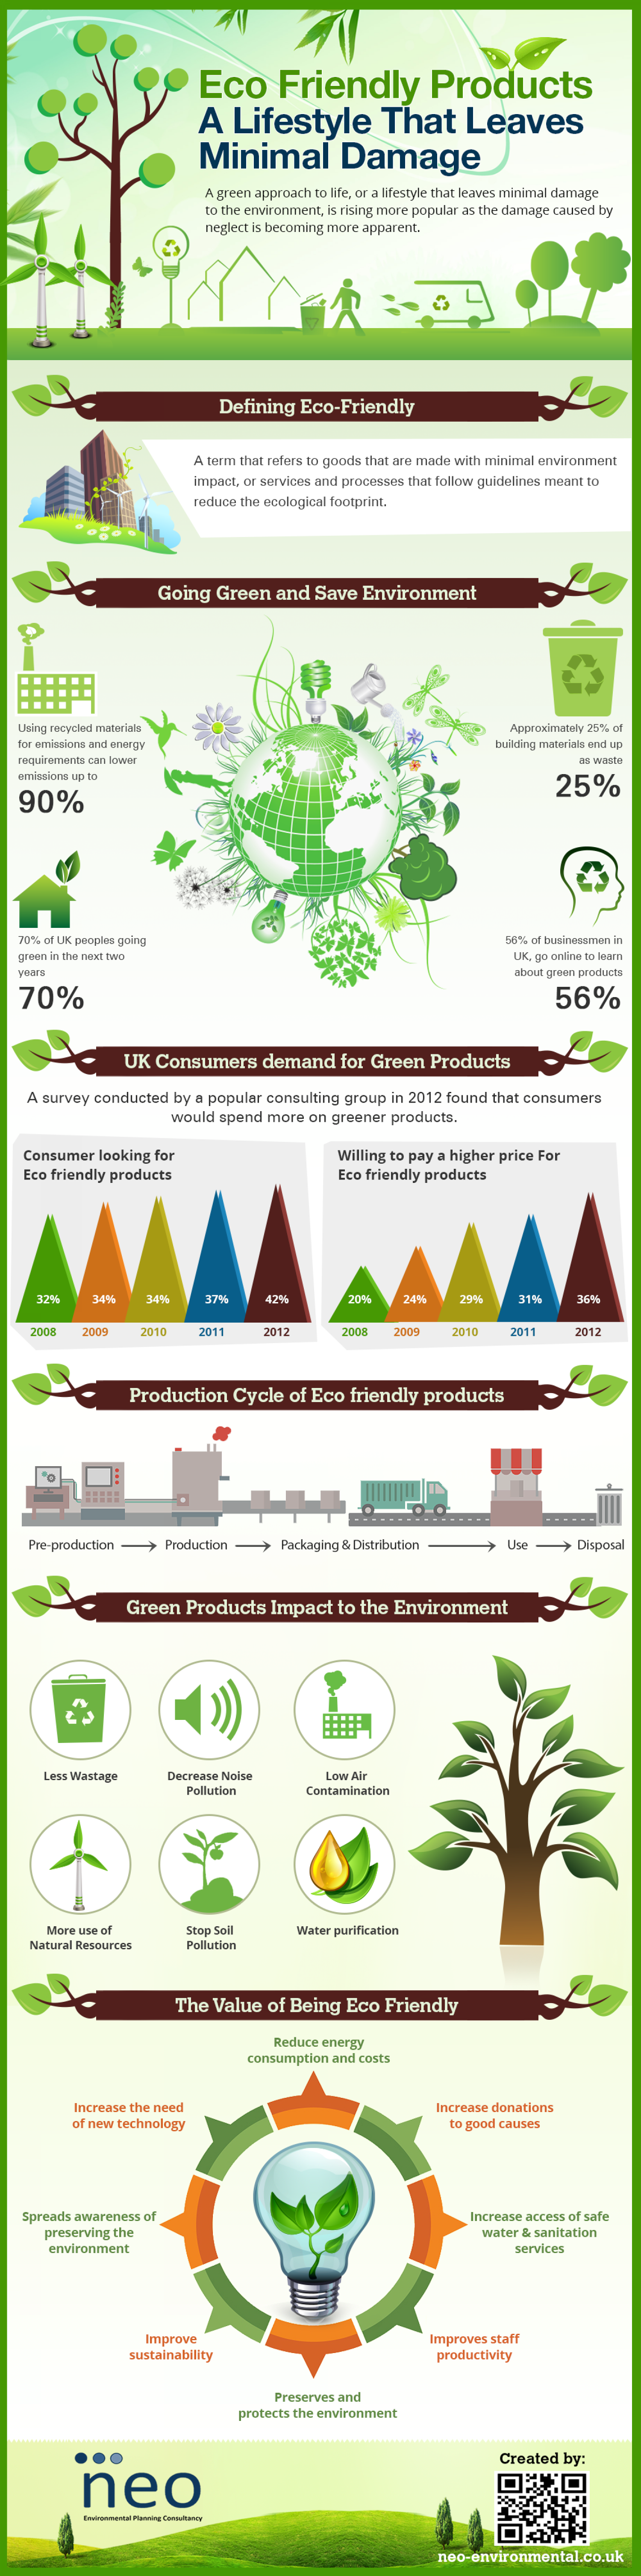 Eco Friendly Products - A Lifestyle That Leaves Minimal Damage Infographic